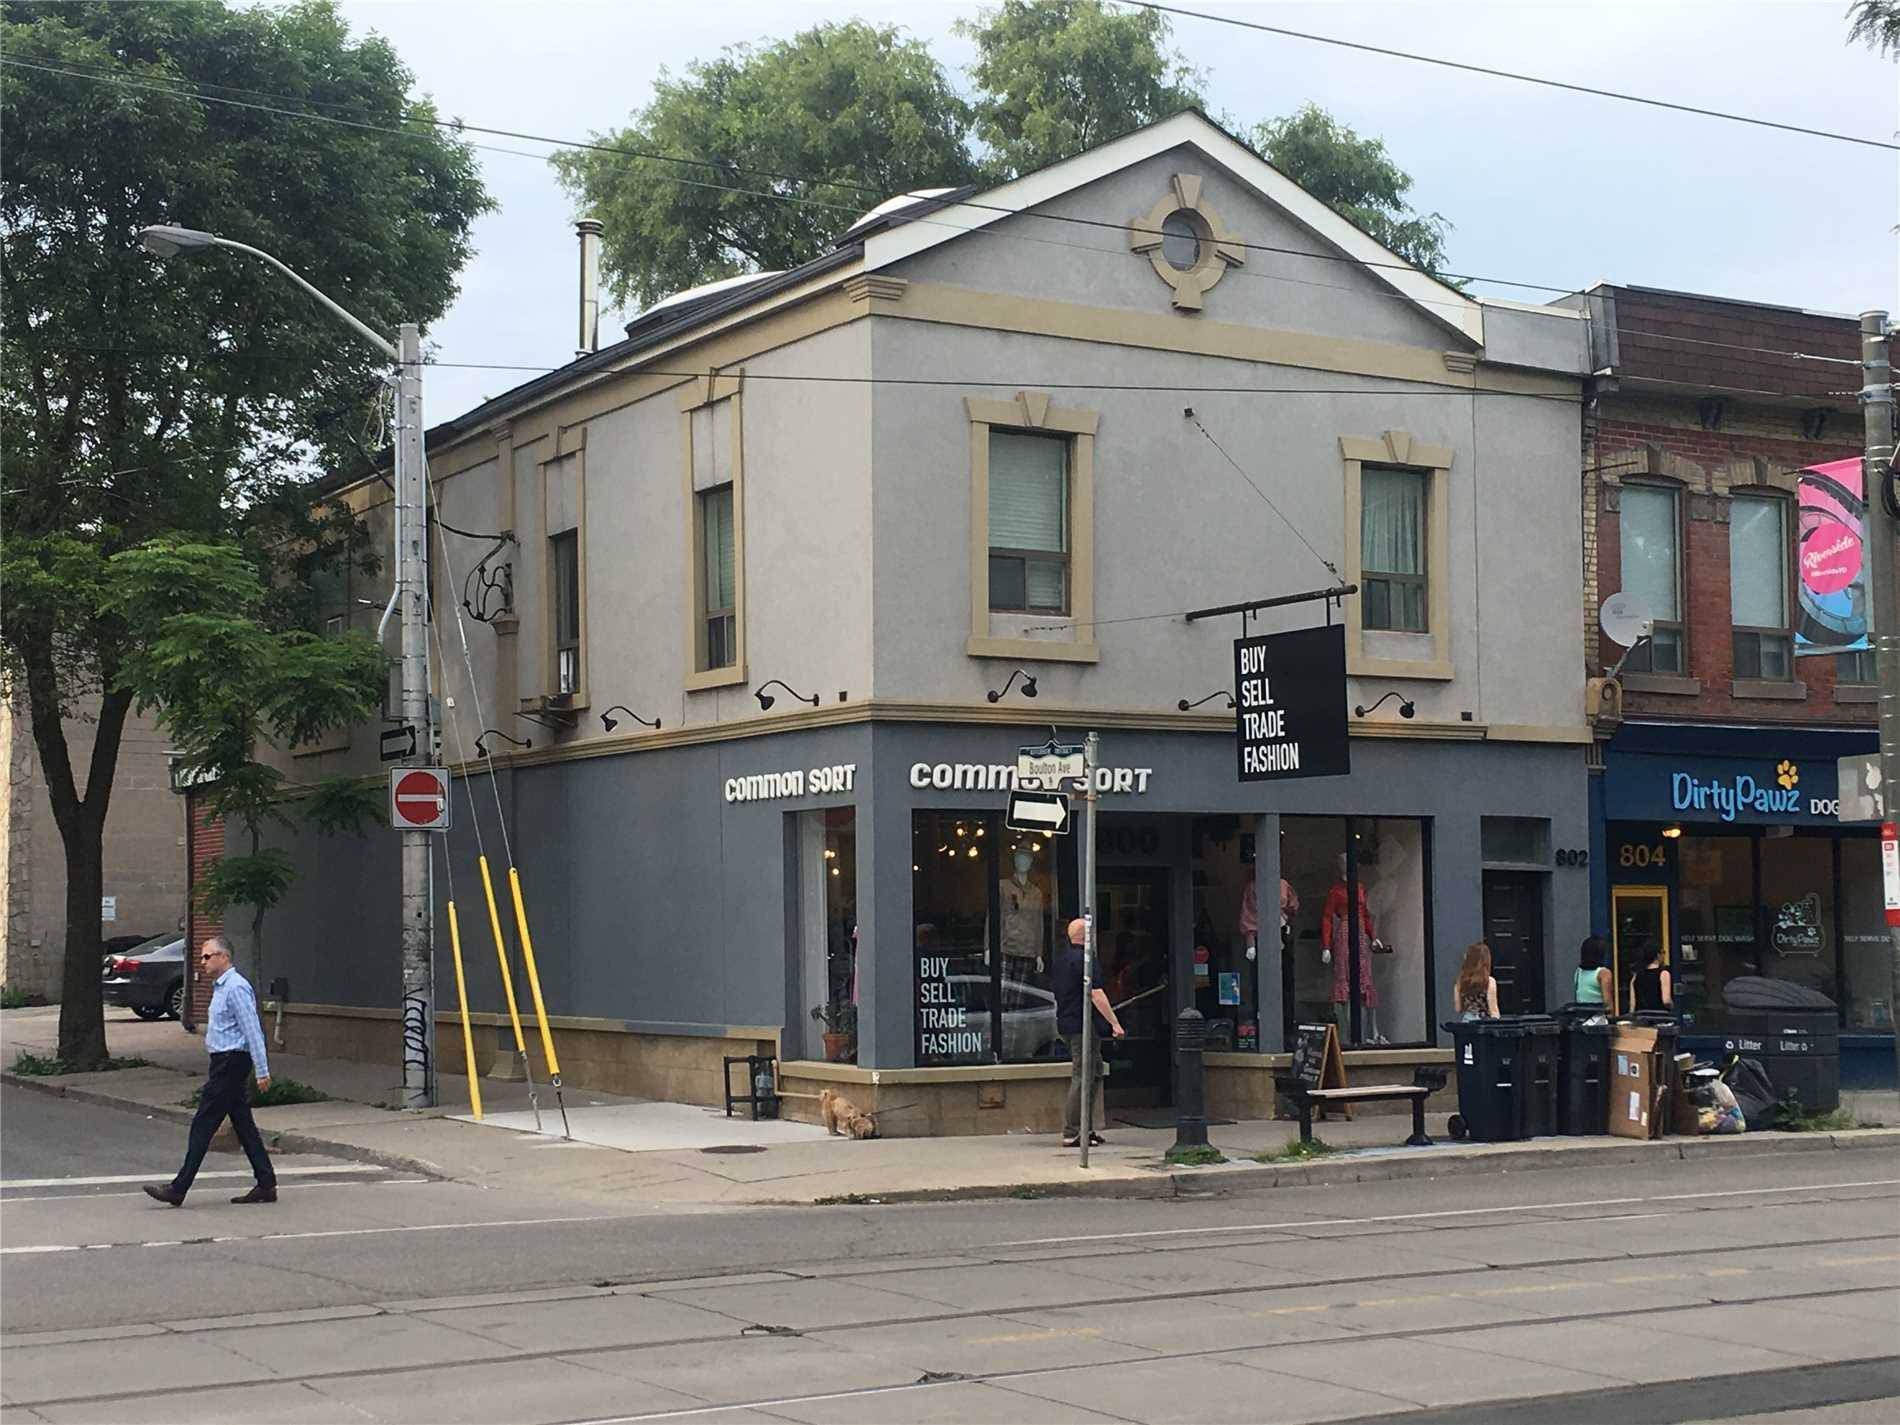 Fabulous Queen St East Corner Property In Prime Leslieville Available For Lease. Former Clothing Store, Suitable For Many Uses. 1,731 Square Feet - Main Floor. Full Basement Included In Rent. $50.00 Psf Net+ $21.00 Psf Tmi. Property Taxes And $500.00/Mo Building Insurance). Total Is Plus Hst And Utilities Direct To Suppliers. Possession - September 1st, 2019. 200 Amp Panel Service.